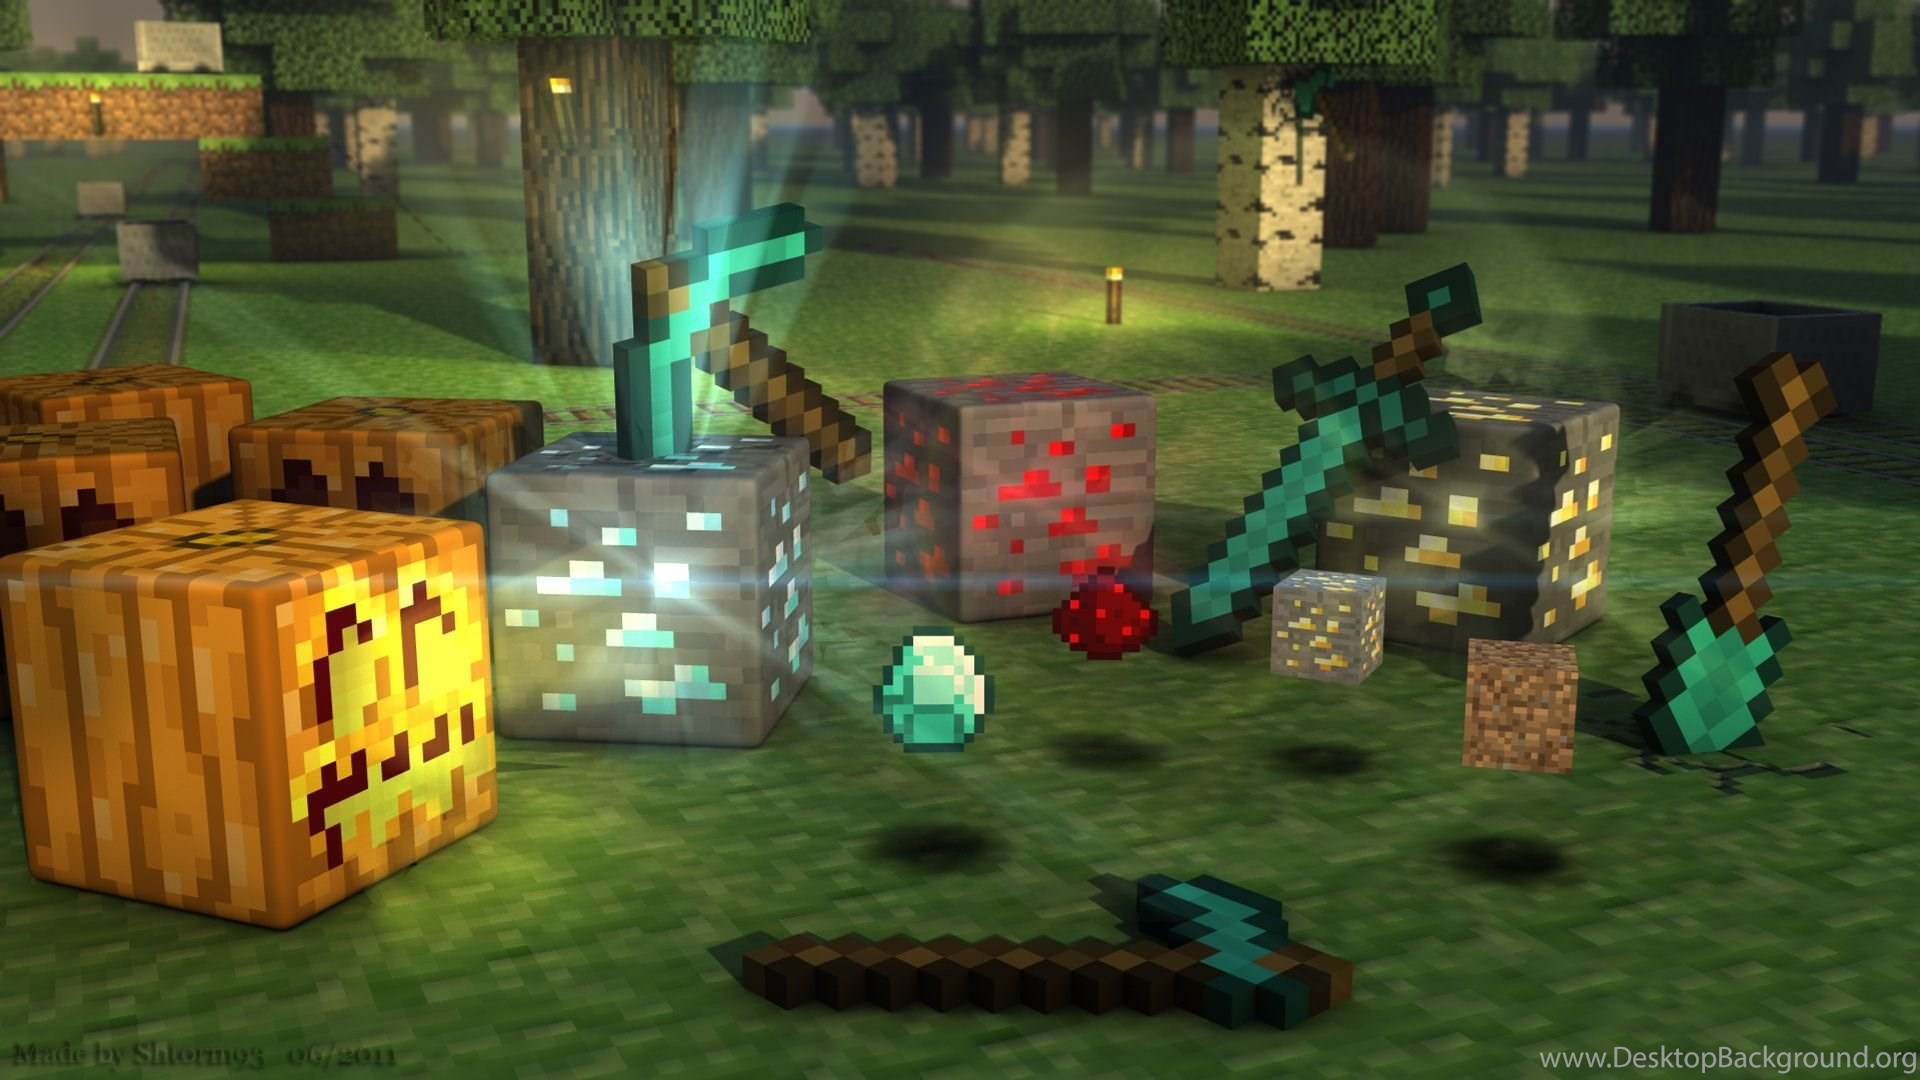 minecraft wallpapers 3977 high definition backgrounds wallnos com